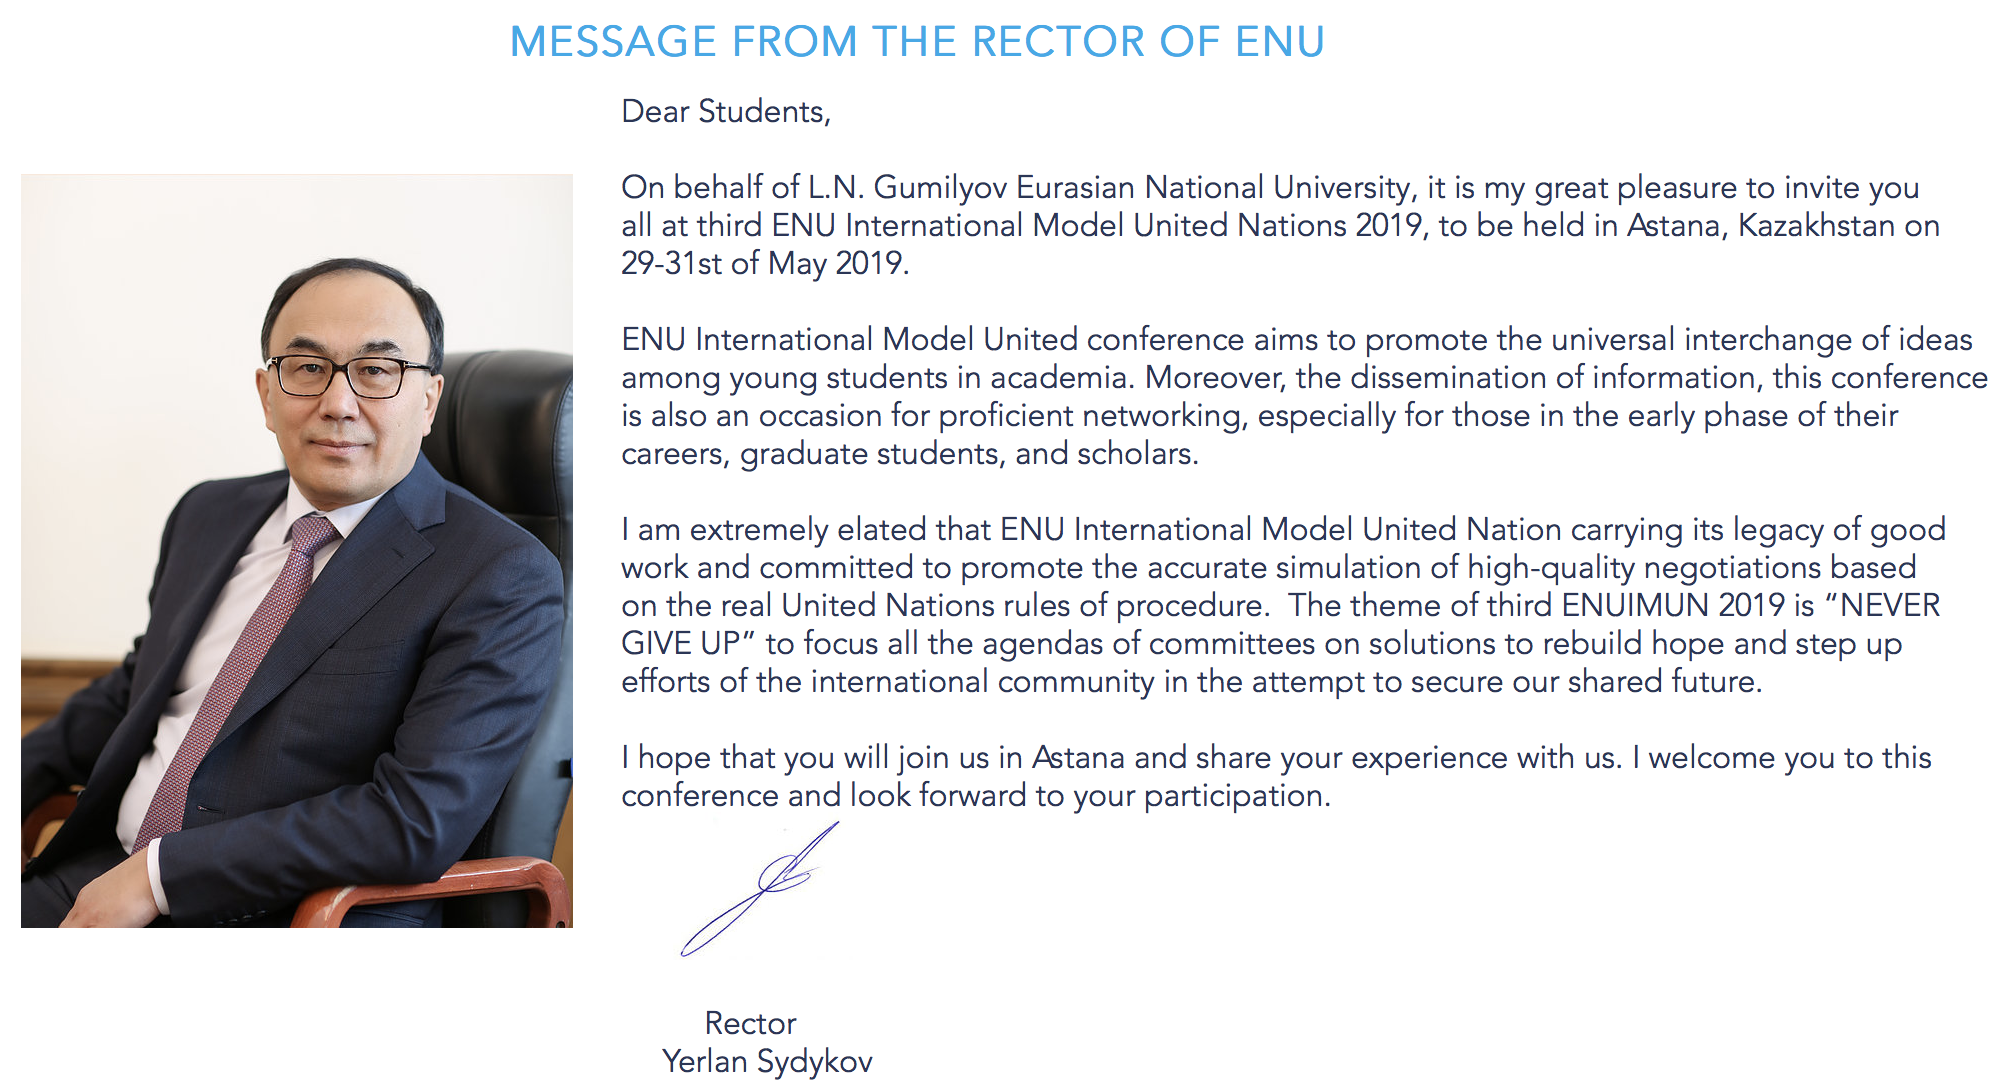 MESSAGE FROM ENU RECTOR